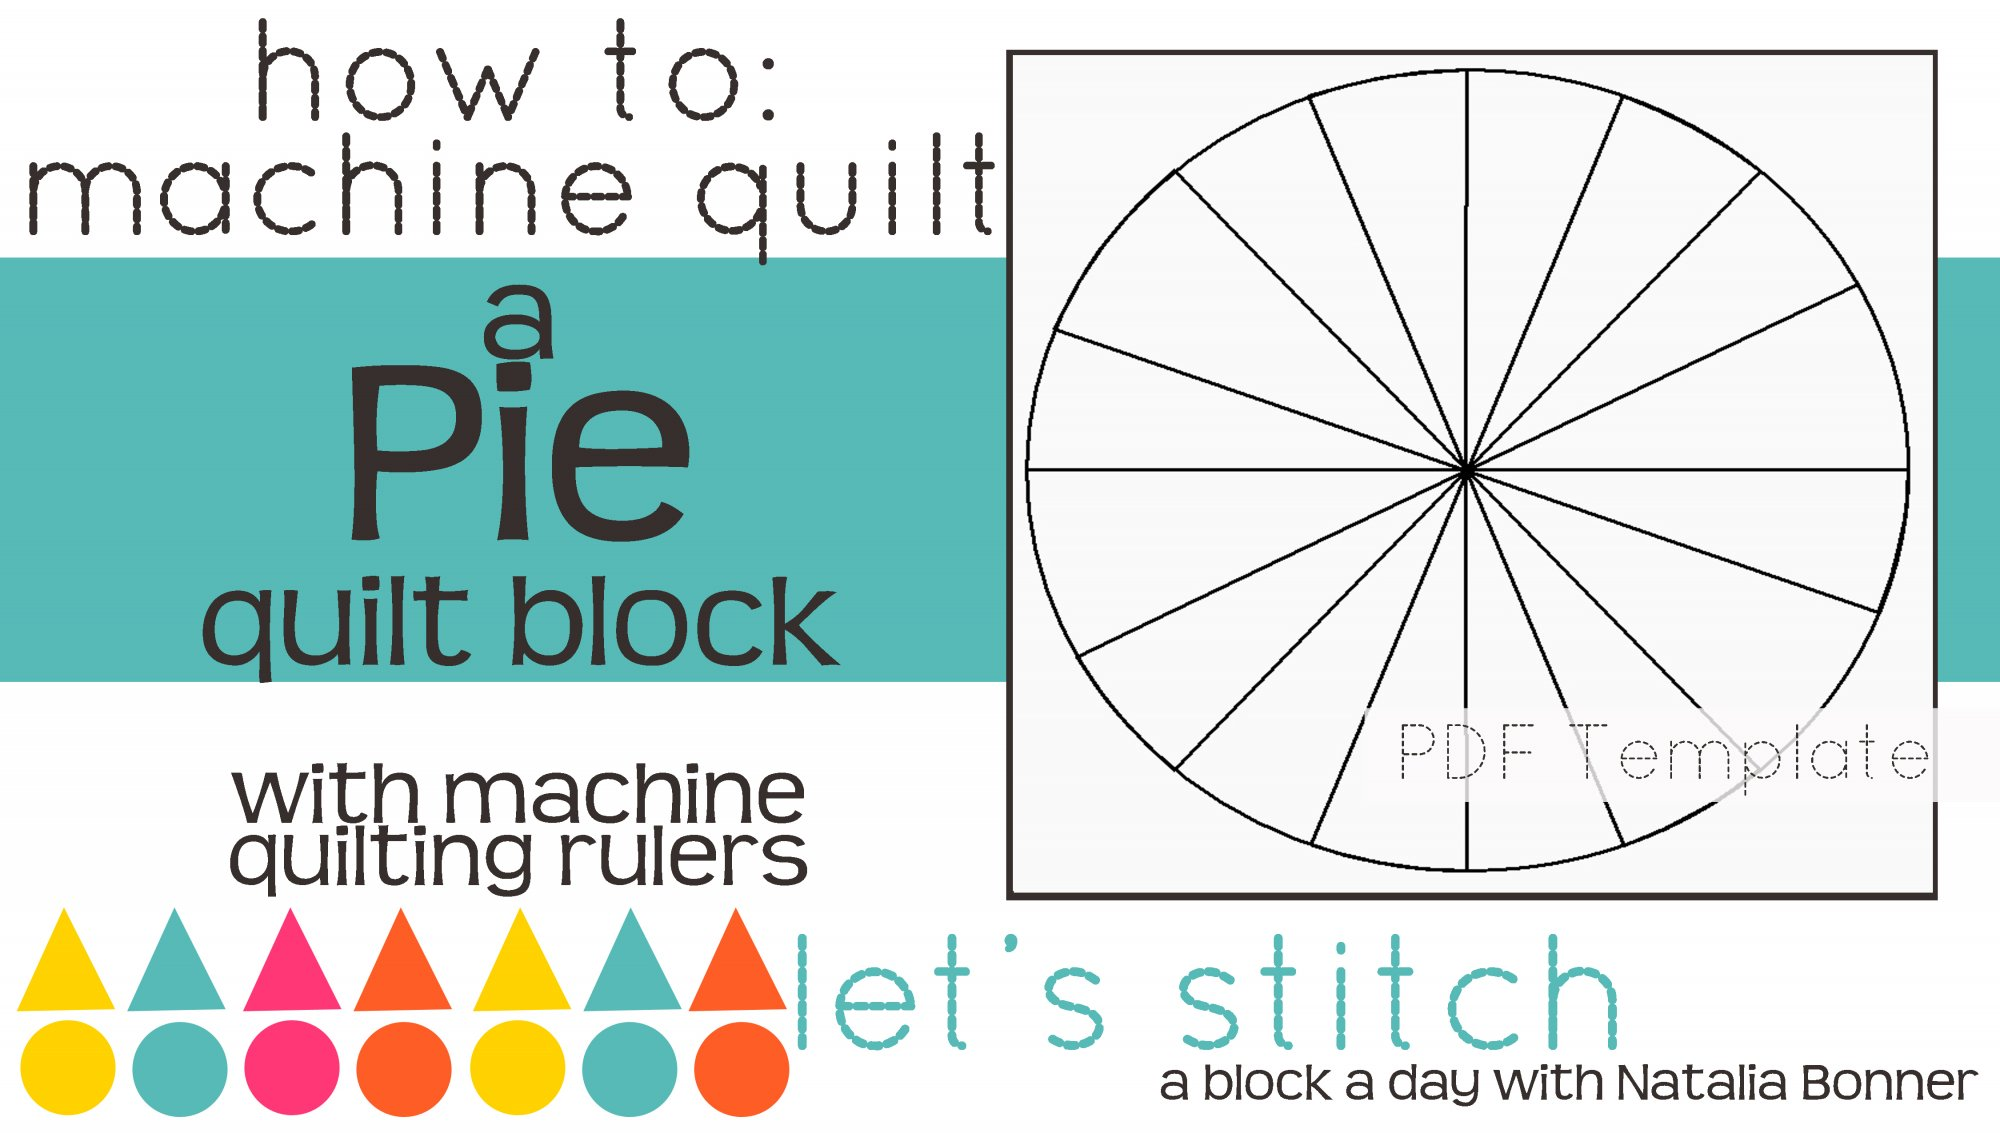 Let's Stitch - A Block a Day With Natalia Bonner - PDF - Pie